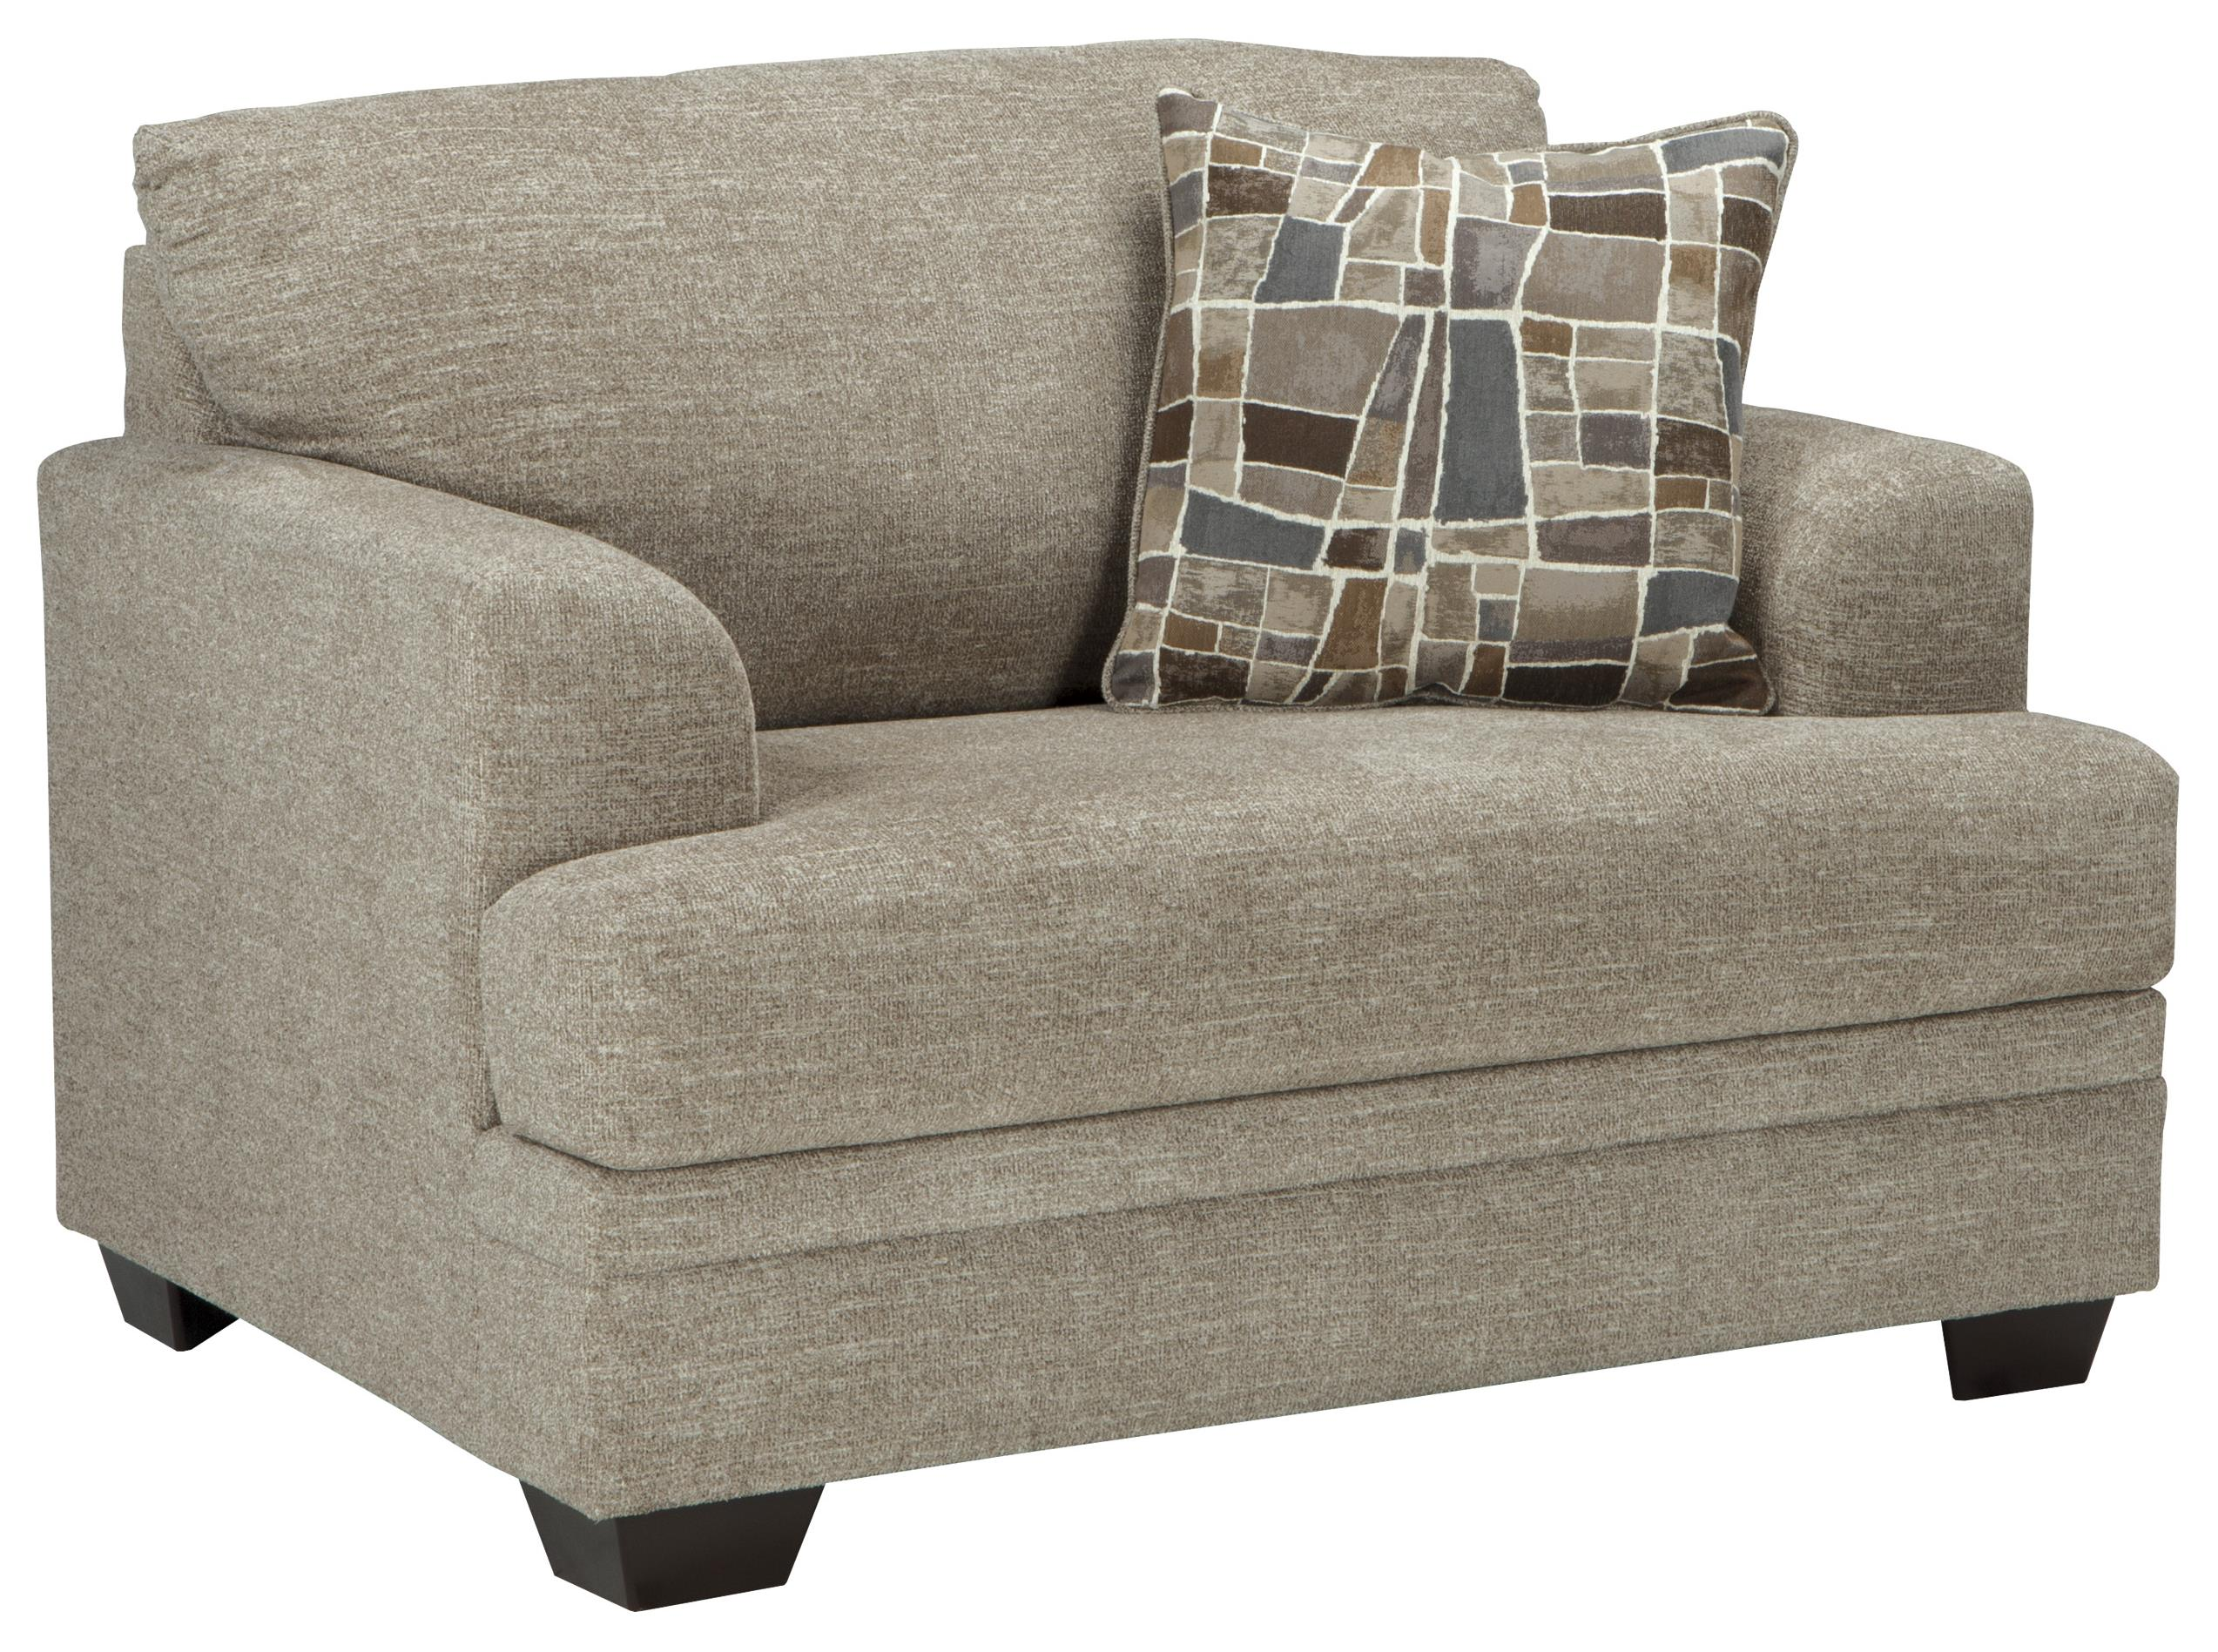 Benchcraft Barrish Contemporary Chair and a Half & Ottoman